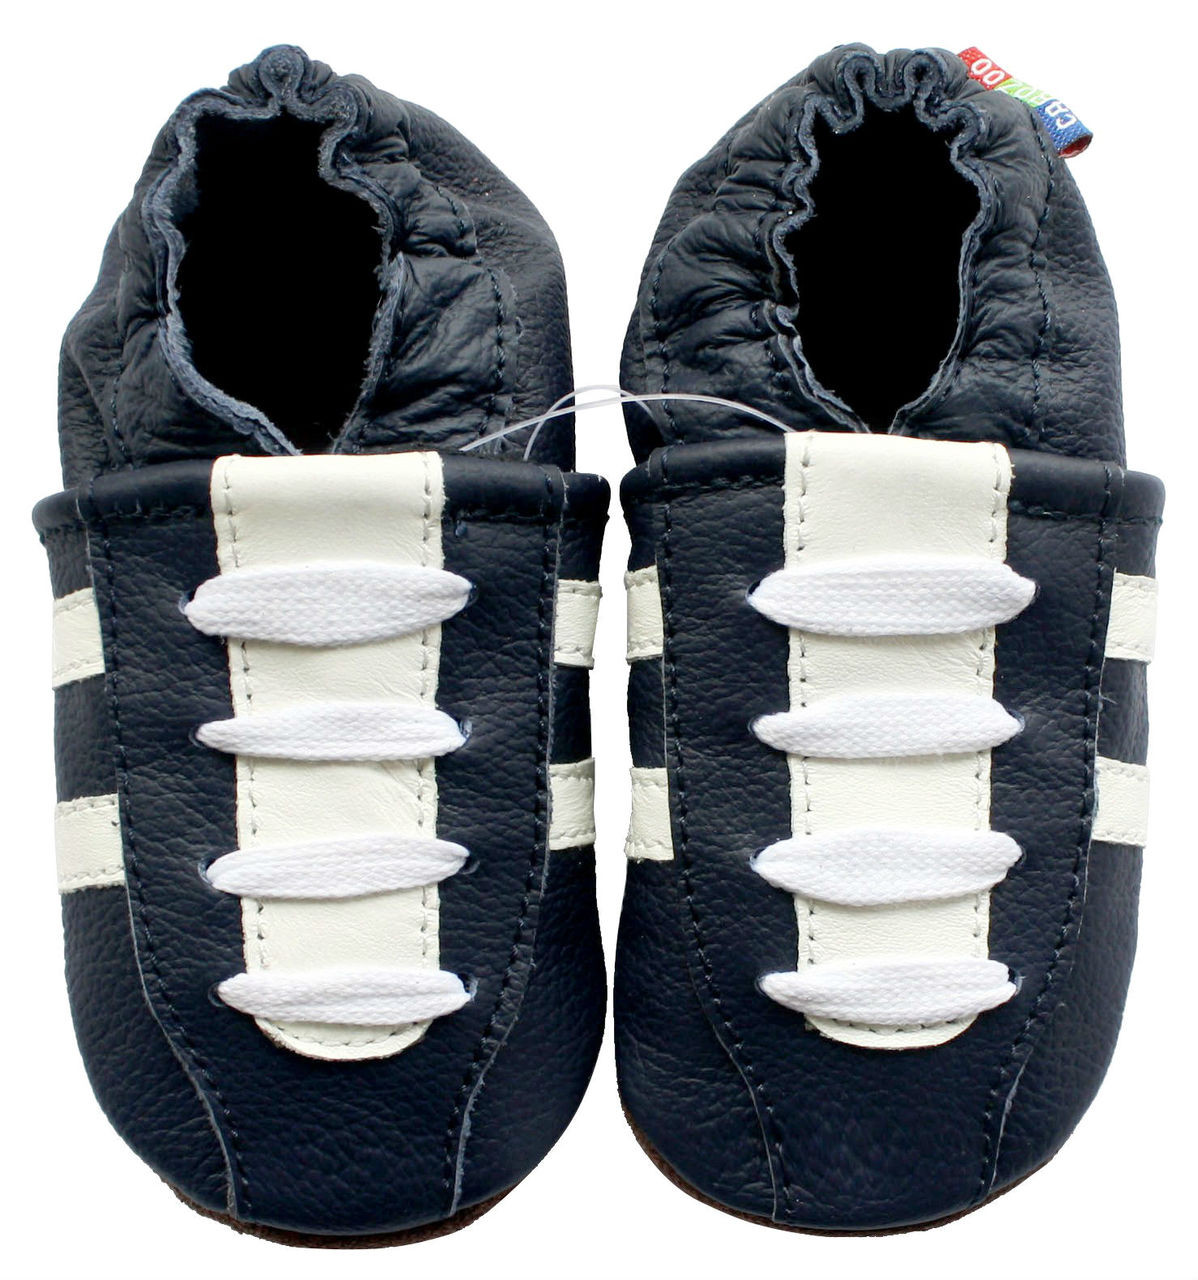 c3ff989f4 carozoo sneakers dark blue 12-18m soft sole leather baby shoes